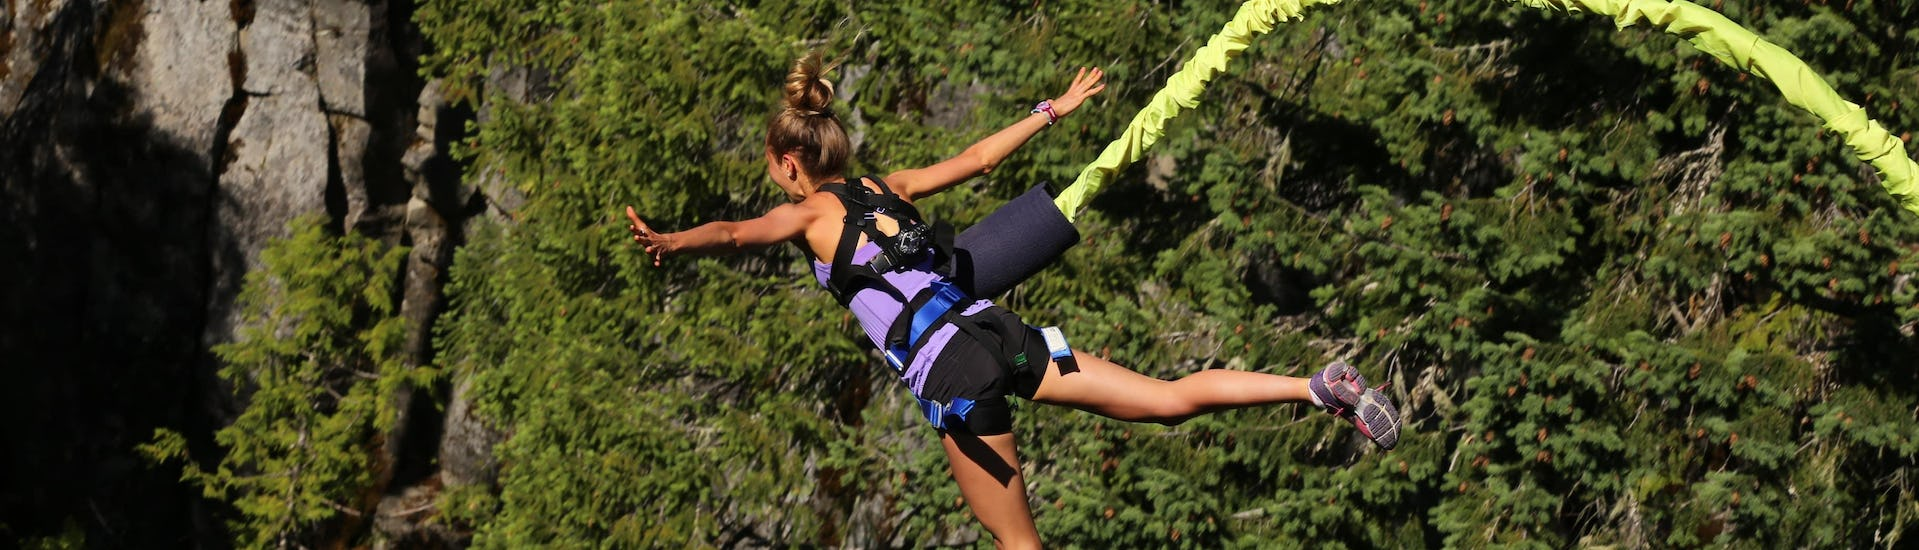 A young woman bungee jumping close to the bungee jumping hotspot of Interlaken.